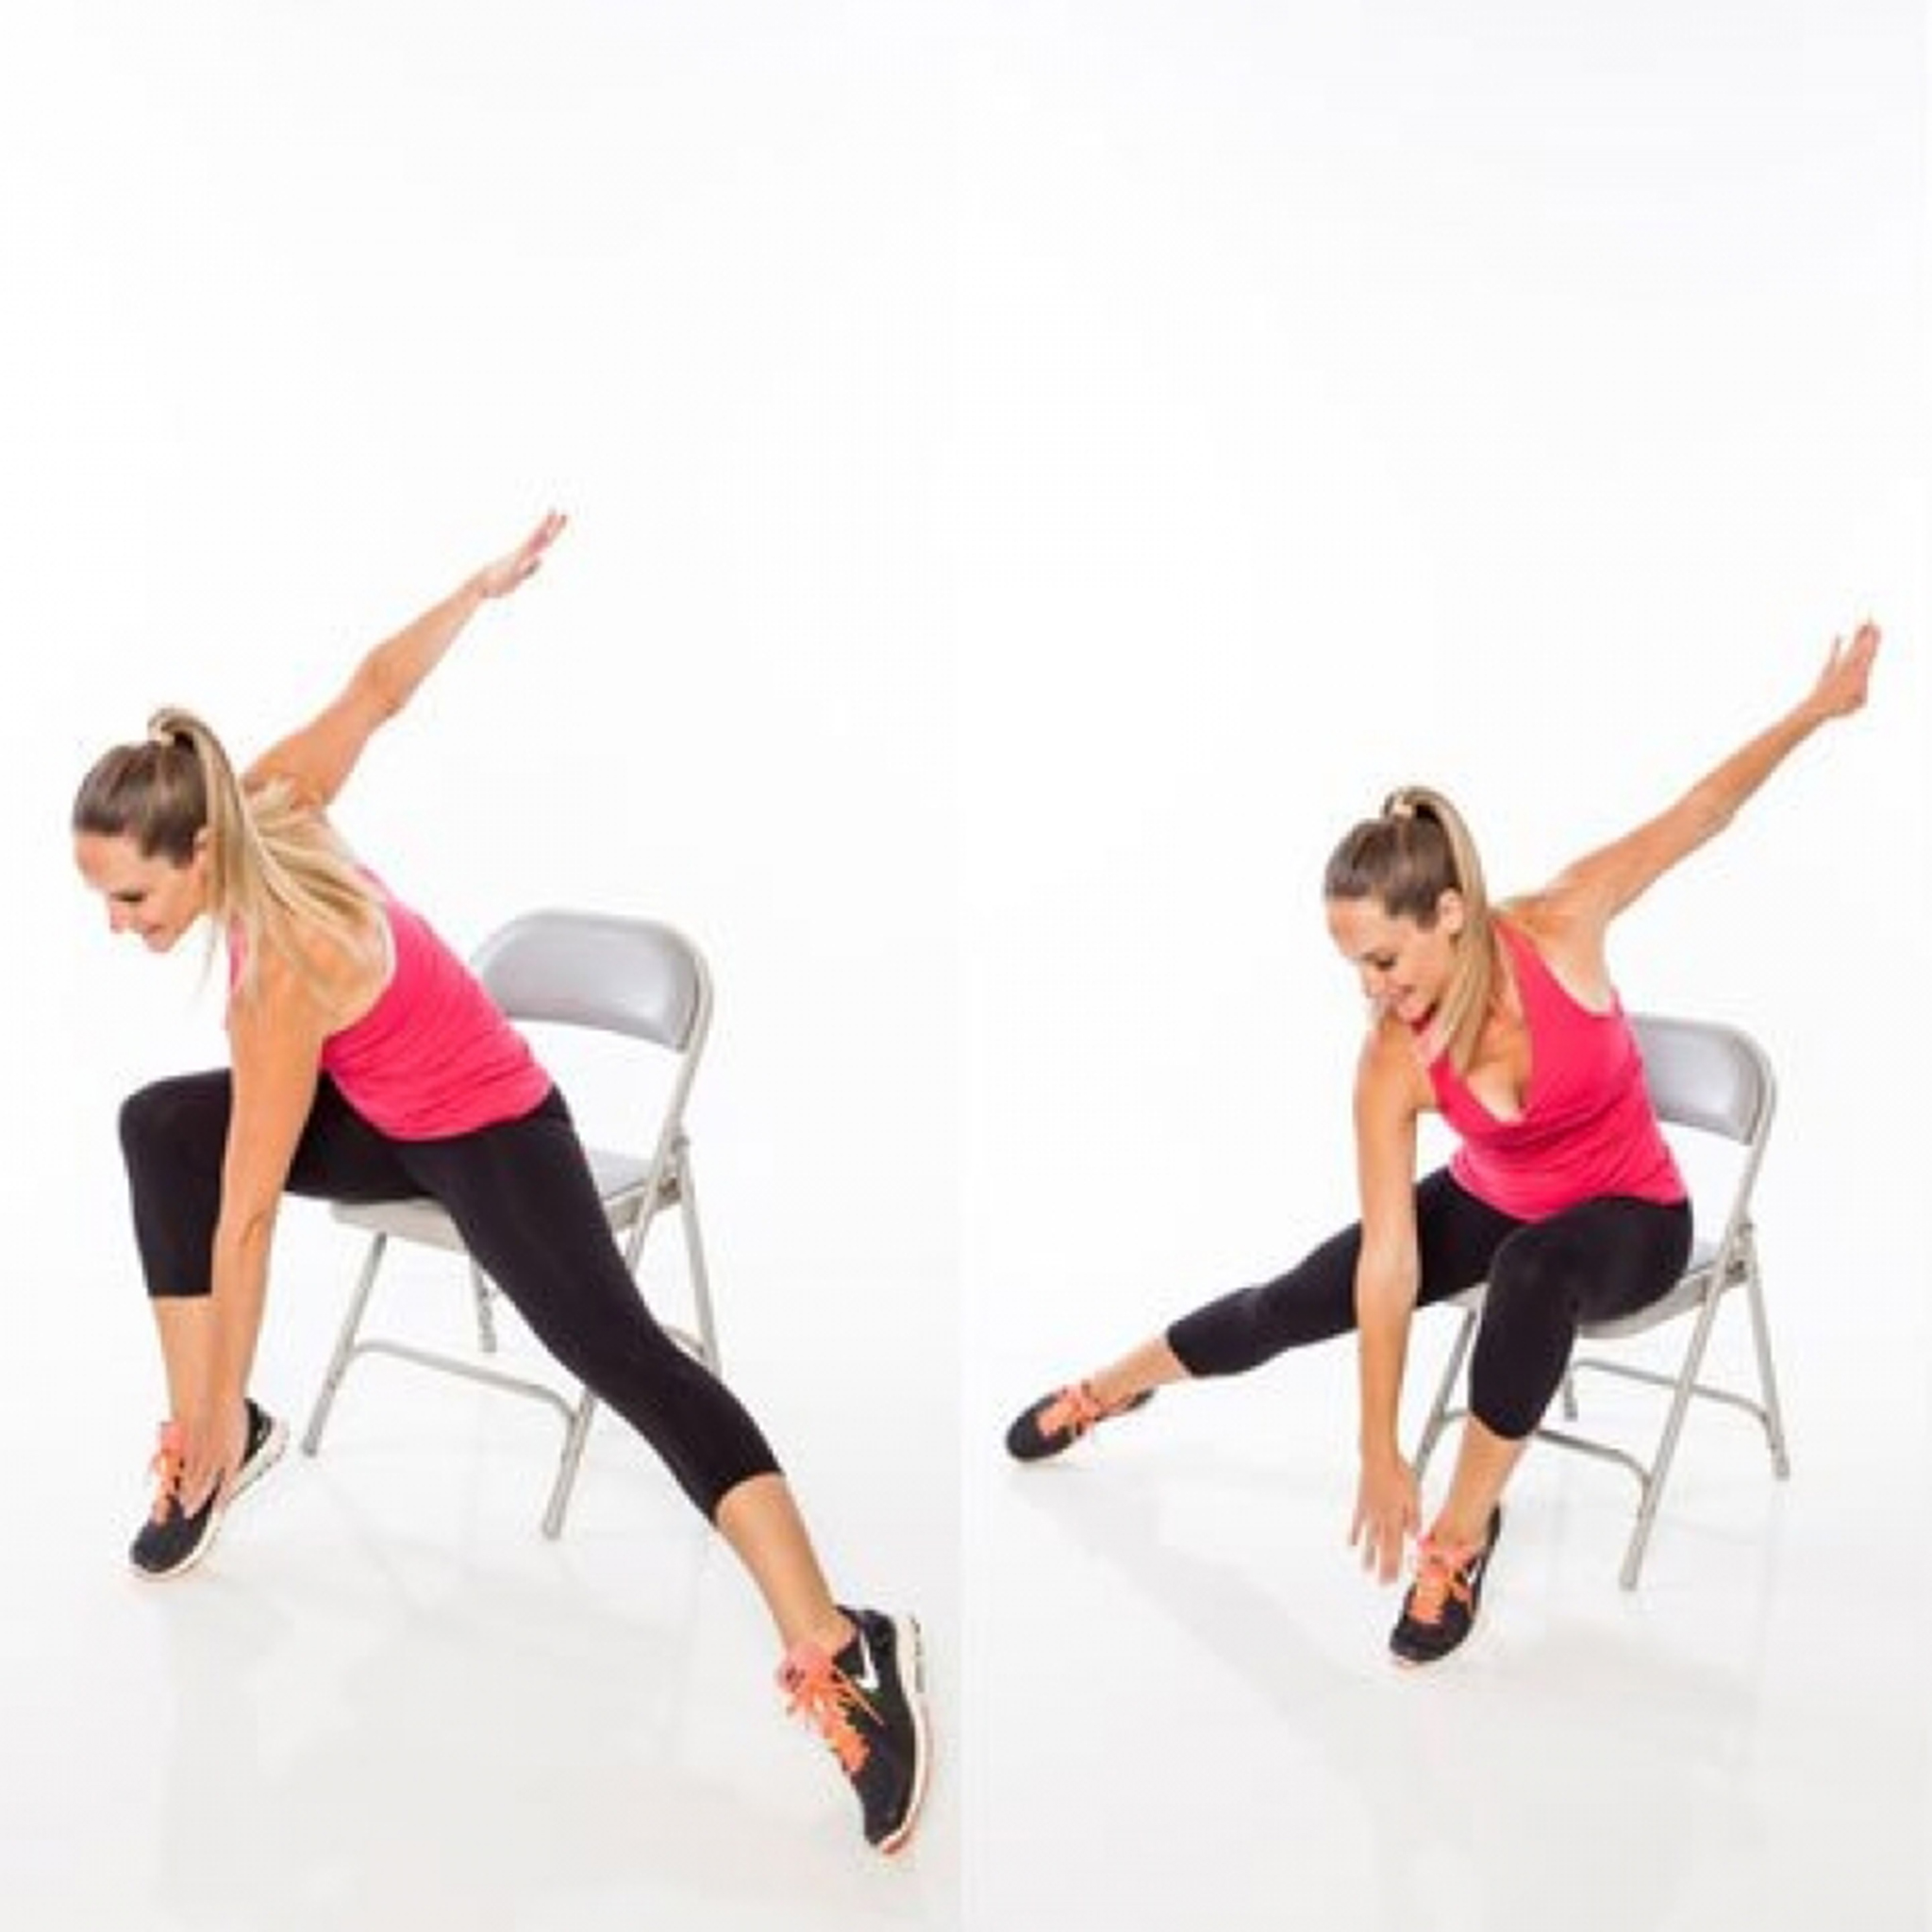 Chair Exercises For Obese 5 Chair Exercises That Reduce Belly Fat In No Time